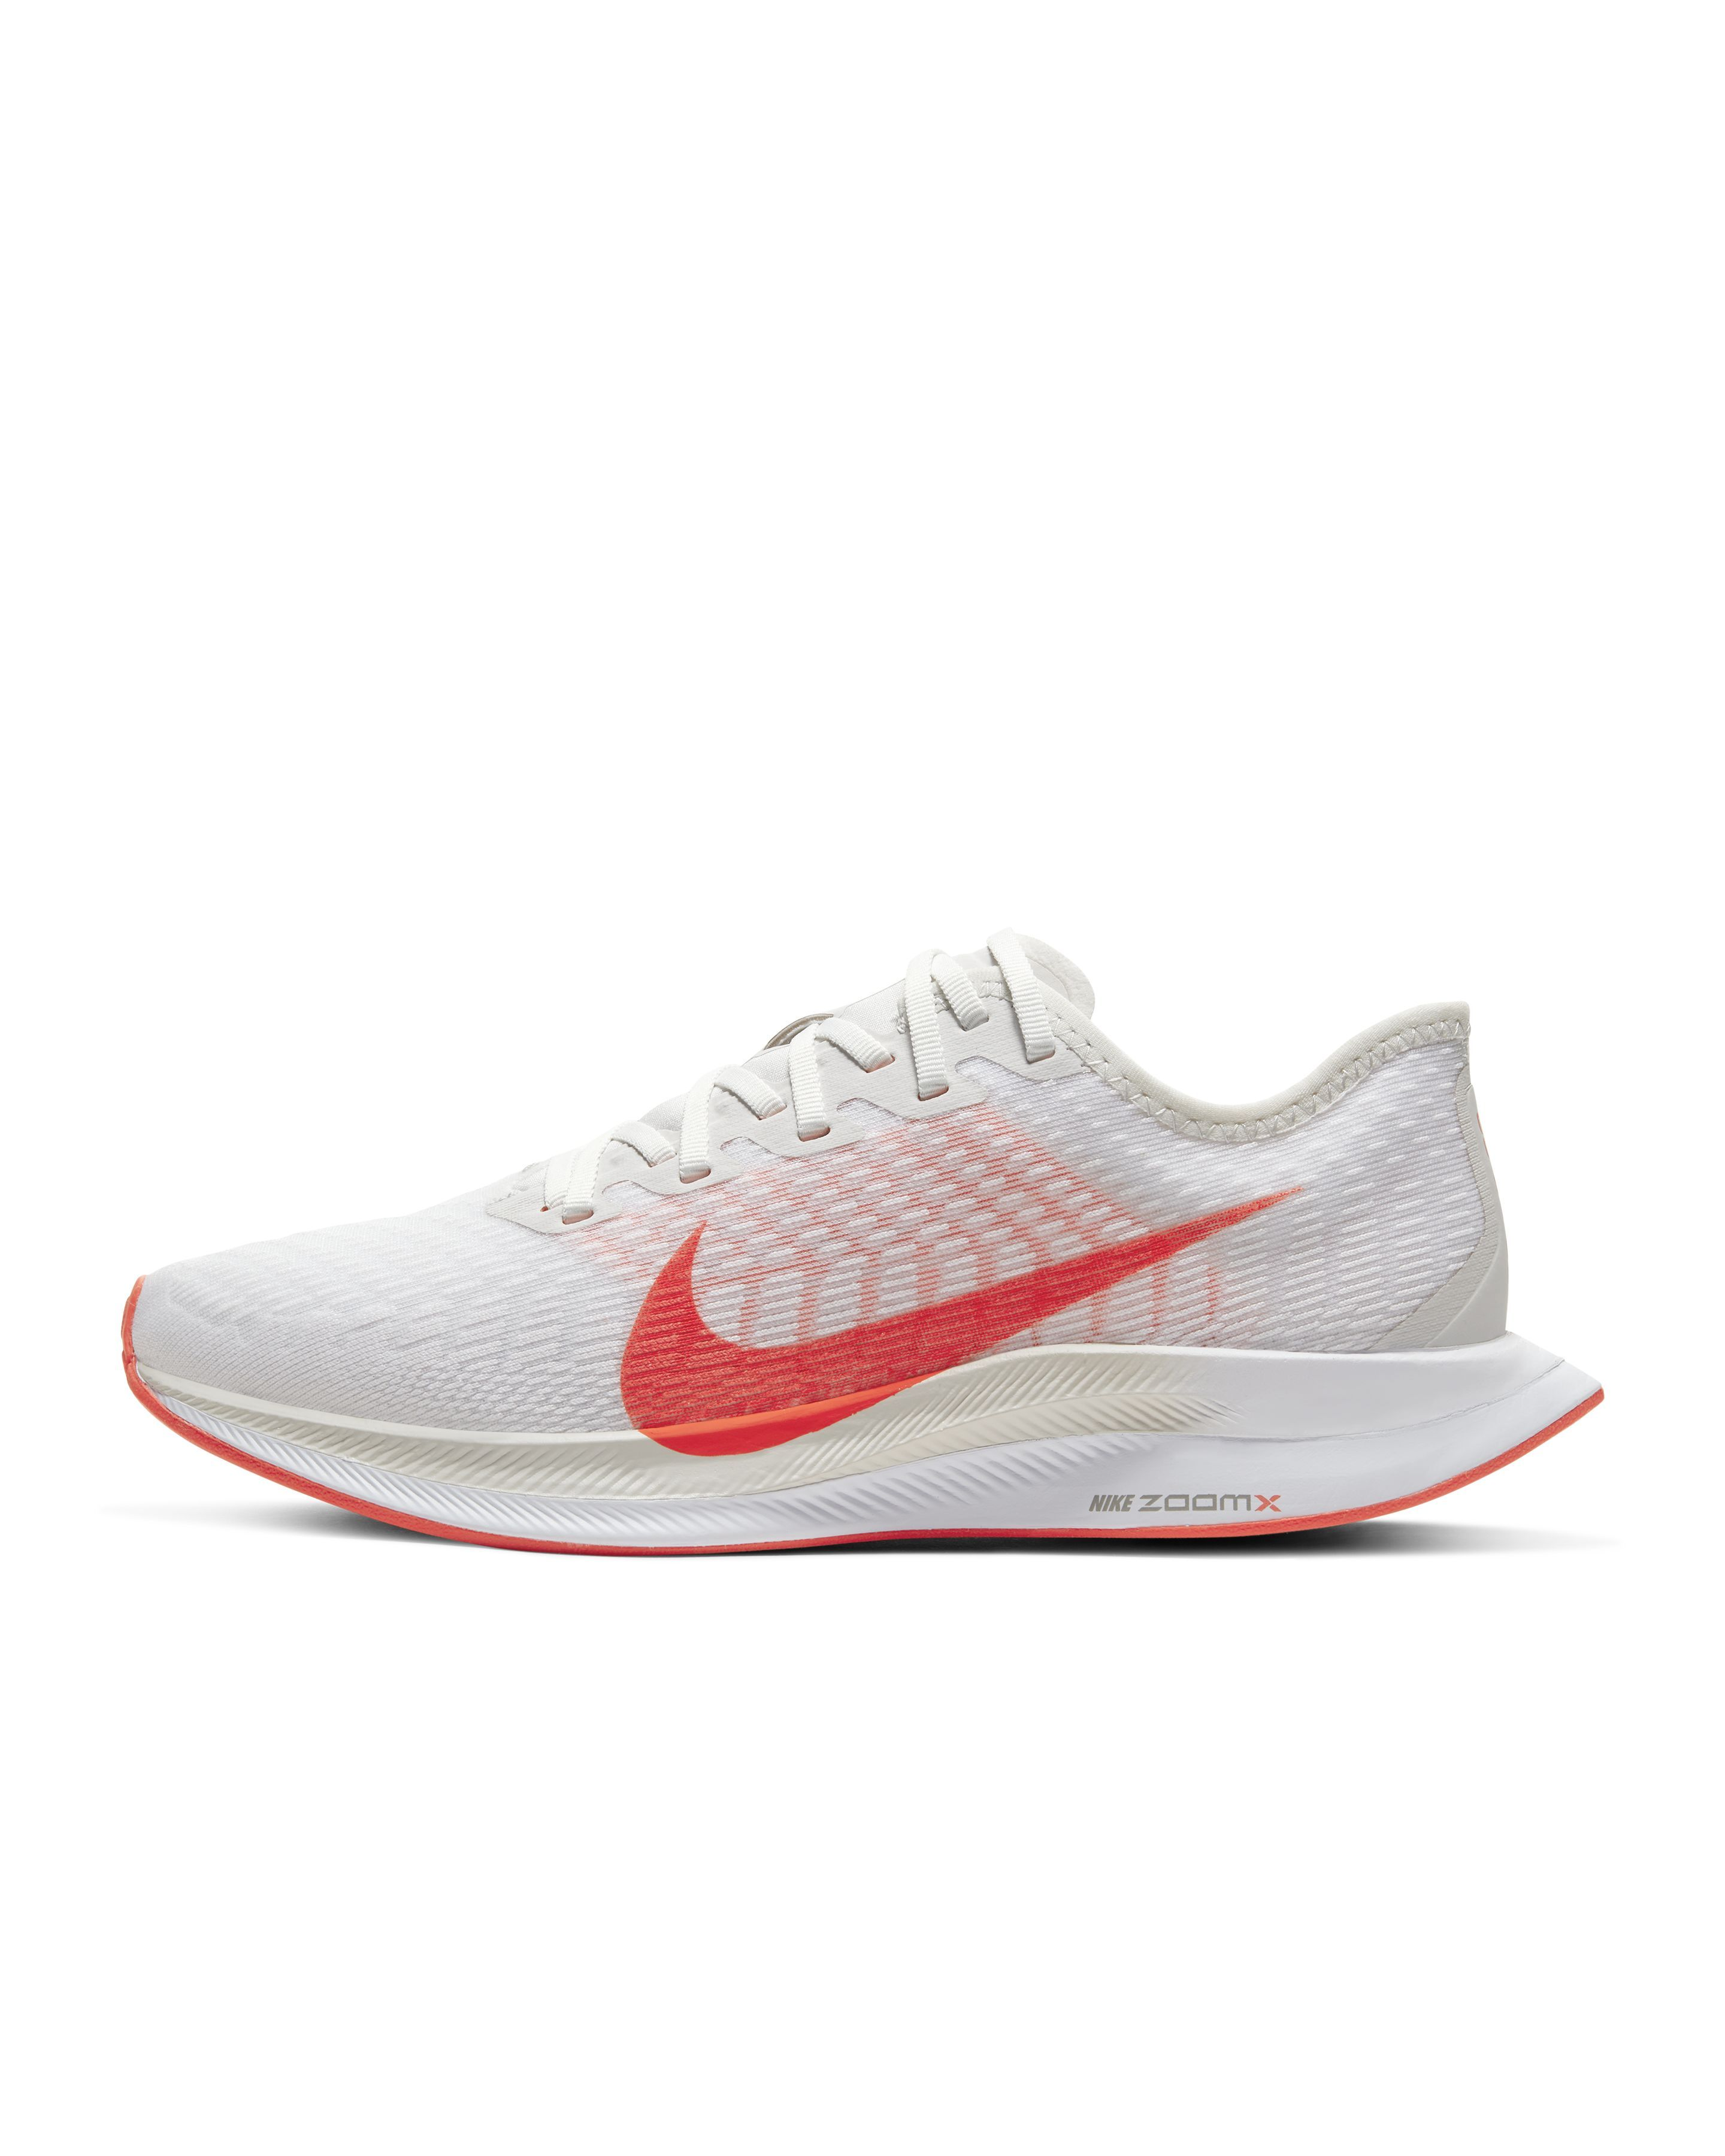 The Best Nike Running Shoes 2020 For